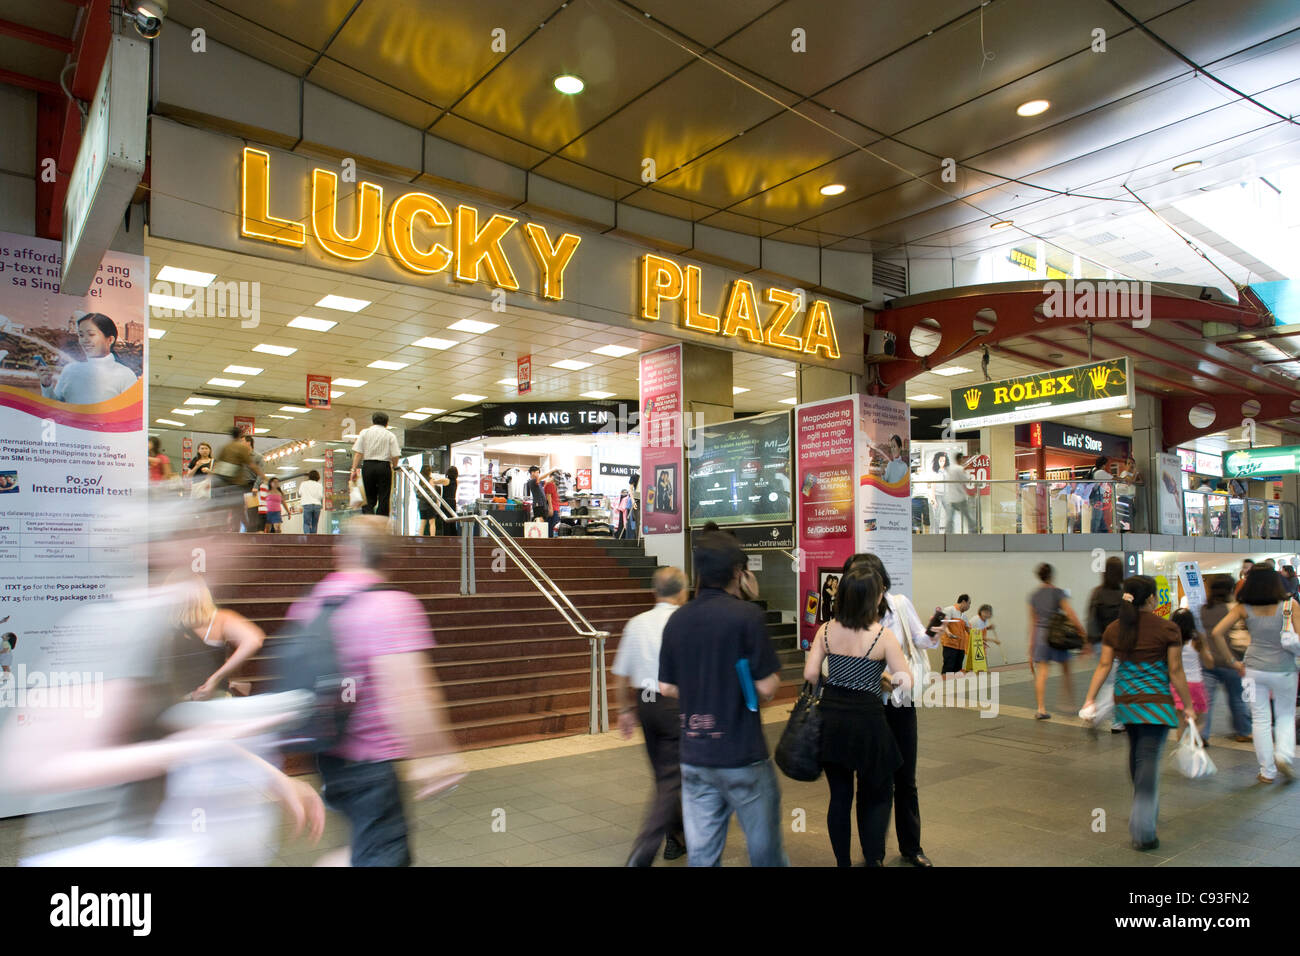 Orchard Plaza Stock Photos & Orchard Plaza Stock Images - Alamy